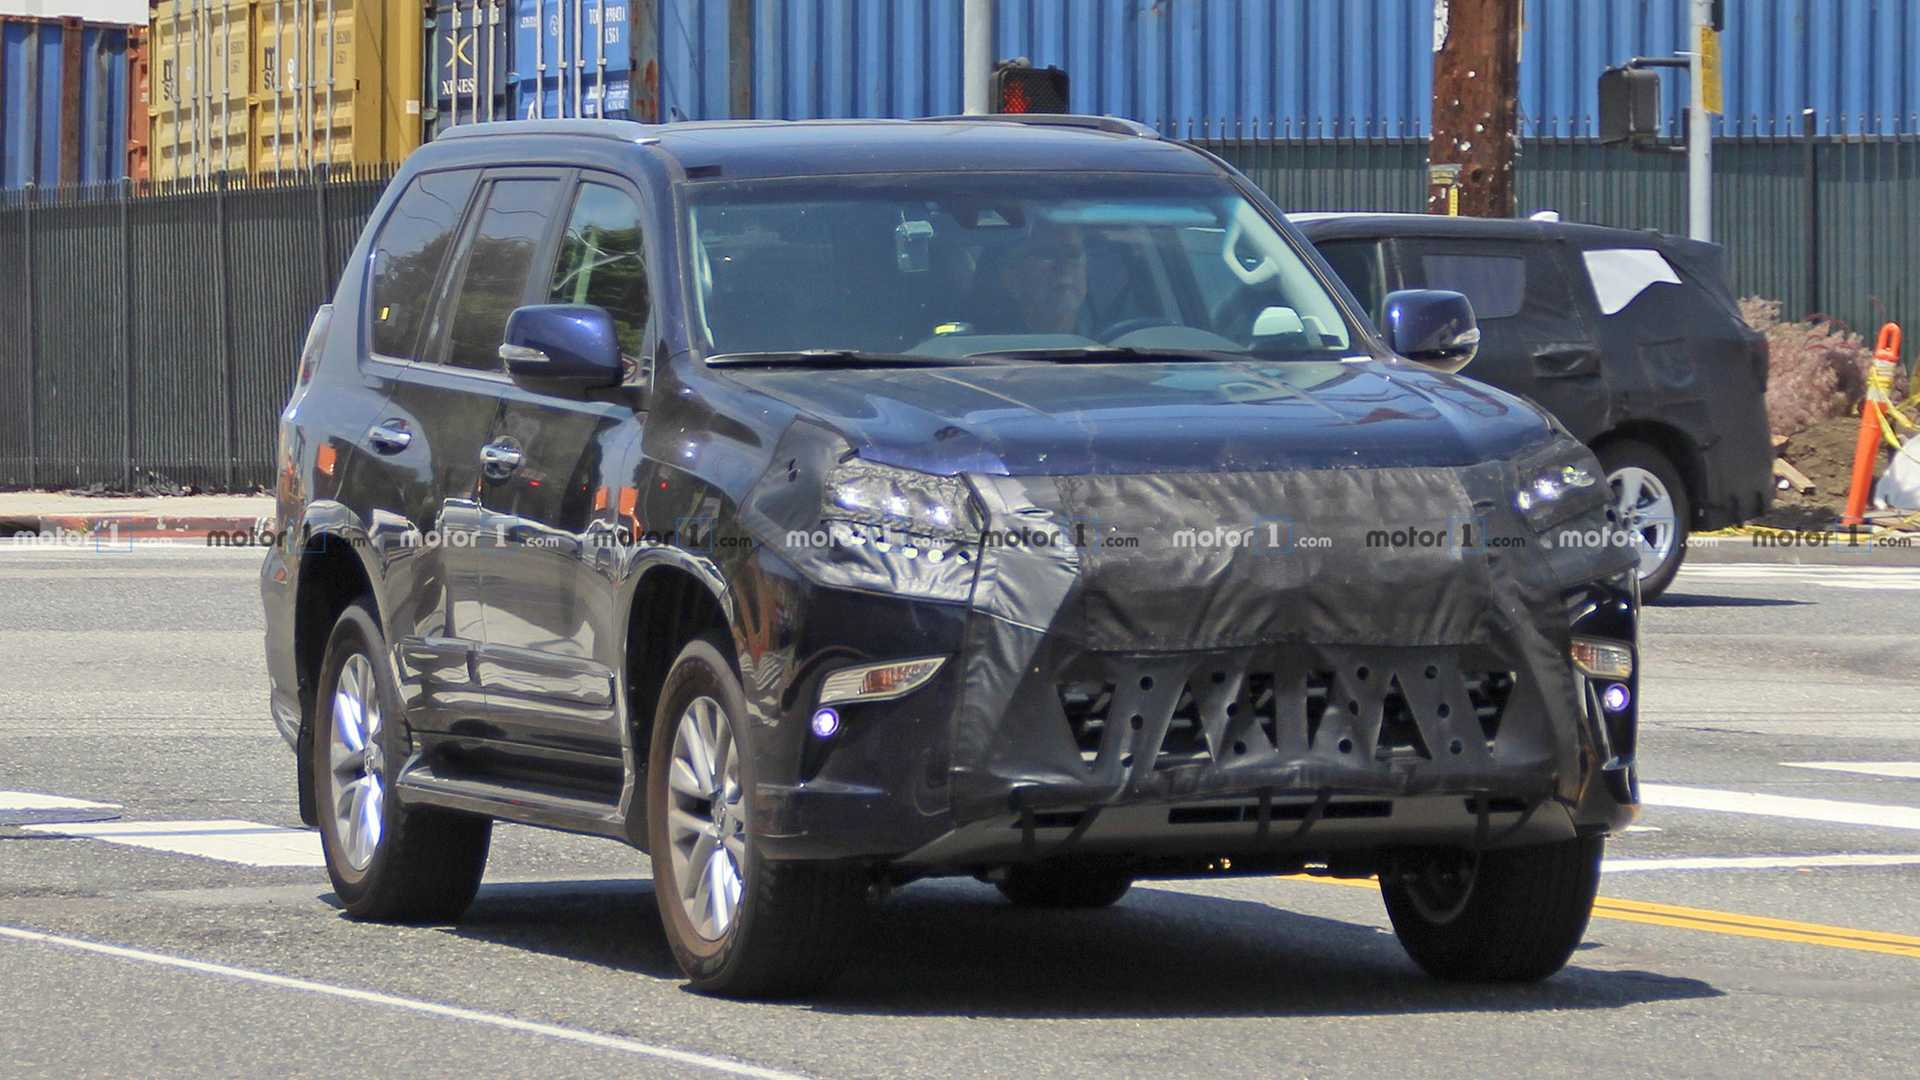 18 Gallery of 2020 Lexus Gx 460 Spy Photos Price and Review by 2020 Lexus Gx 460 Spy Photos